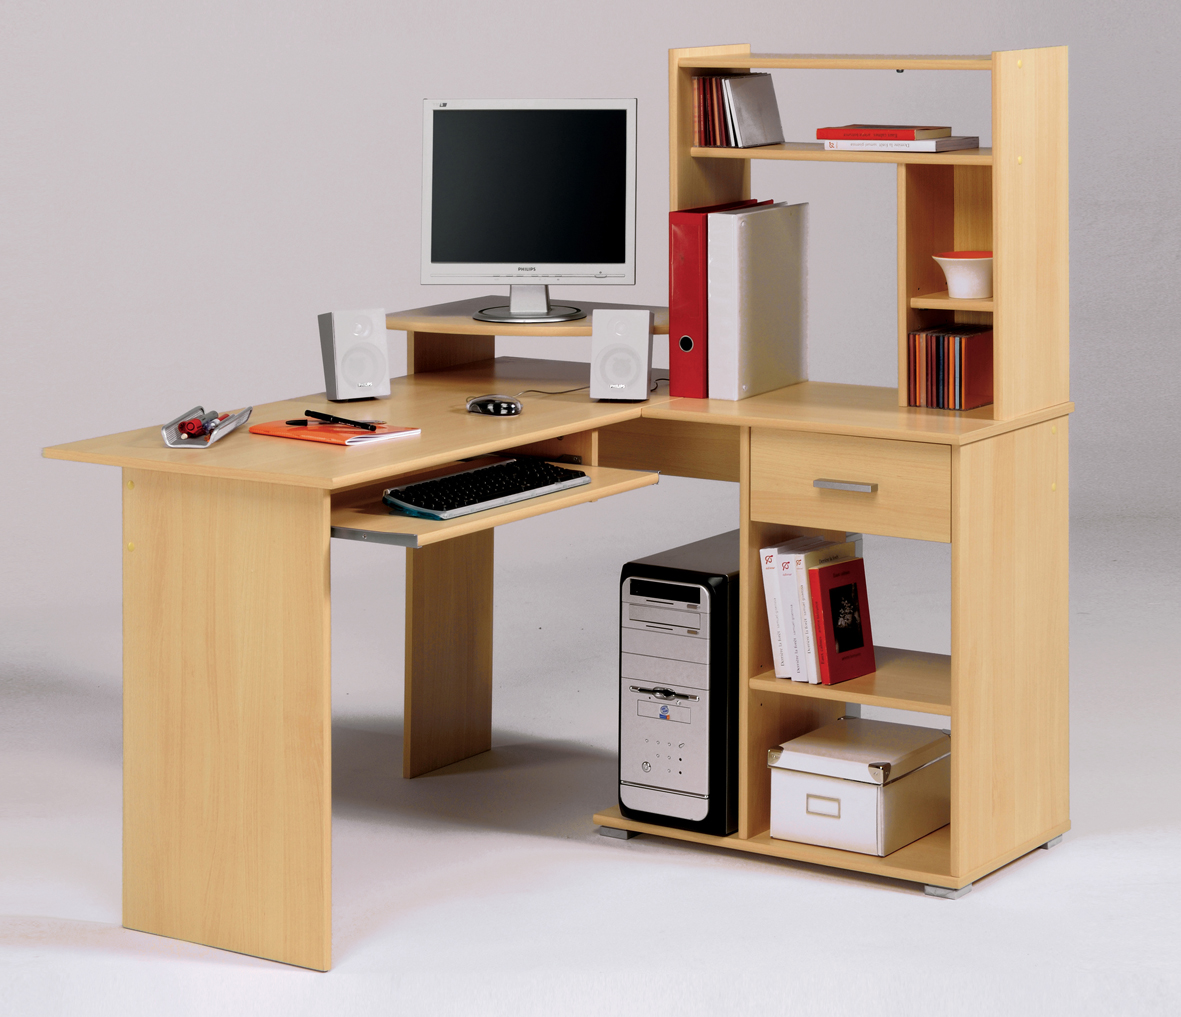 Home Computer Workstation Ideas Corner Computer Table Designs An Interior Design